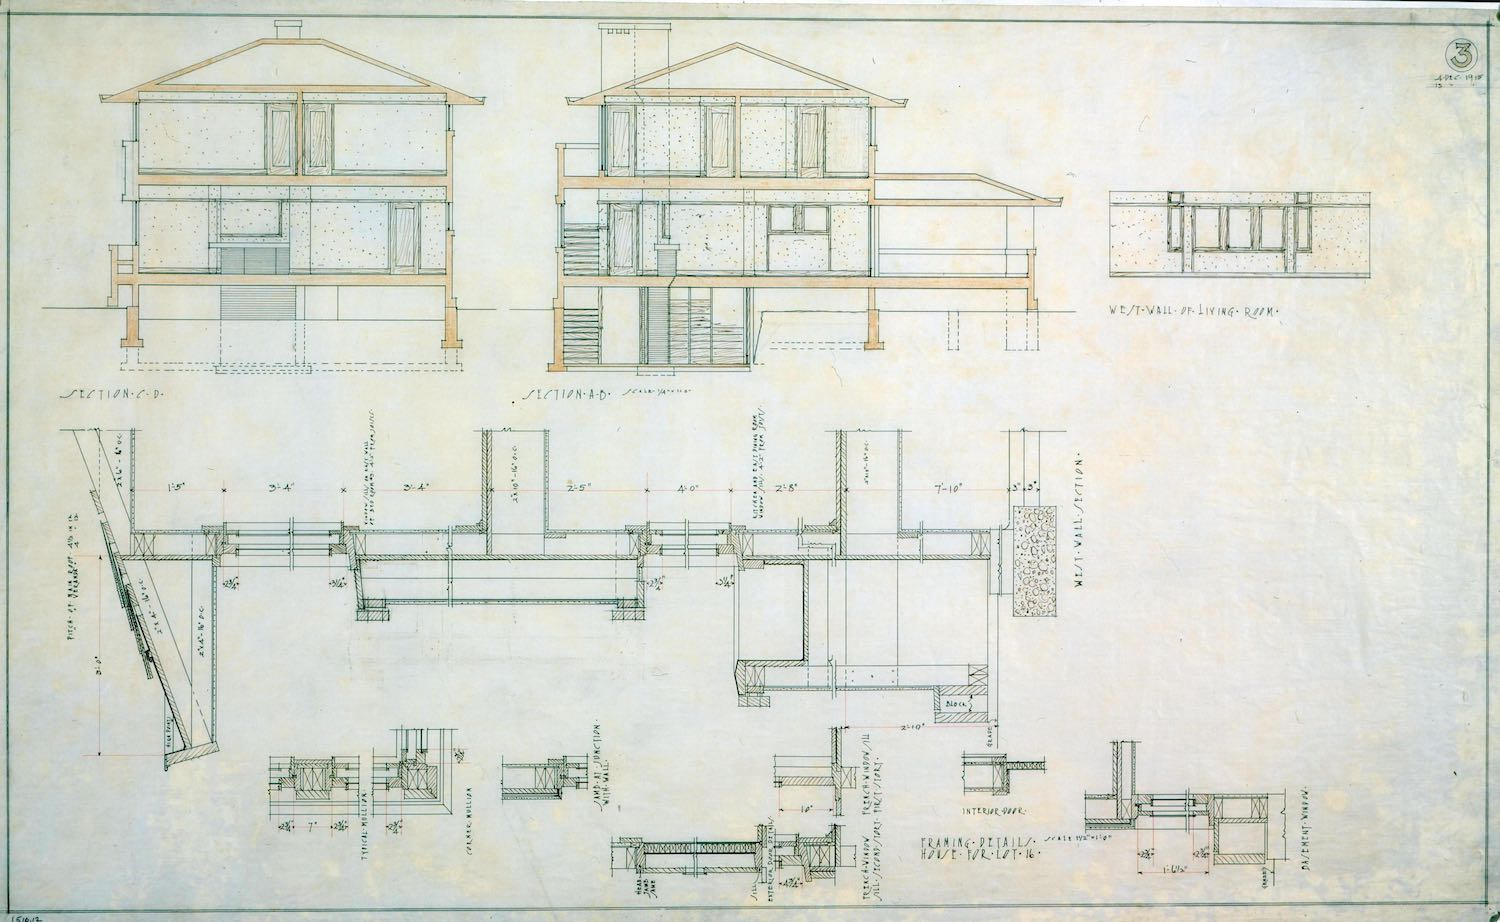 Original FLW Drawings showing Section and Details The Frank Lloyd Wright Foundation}